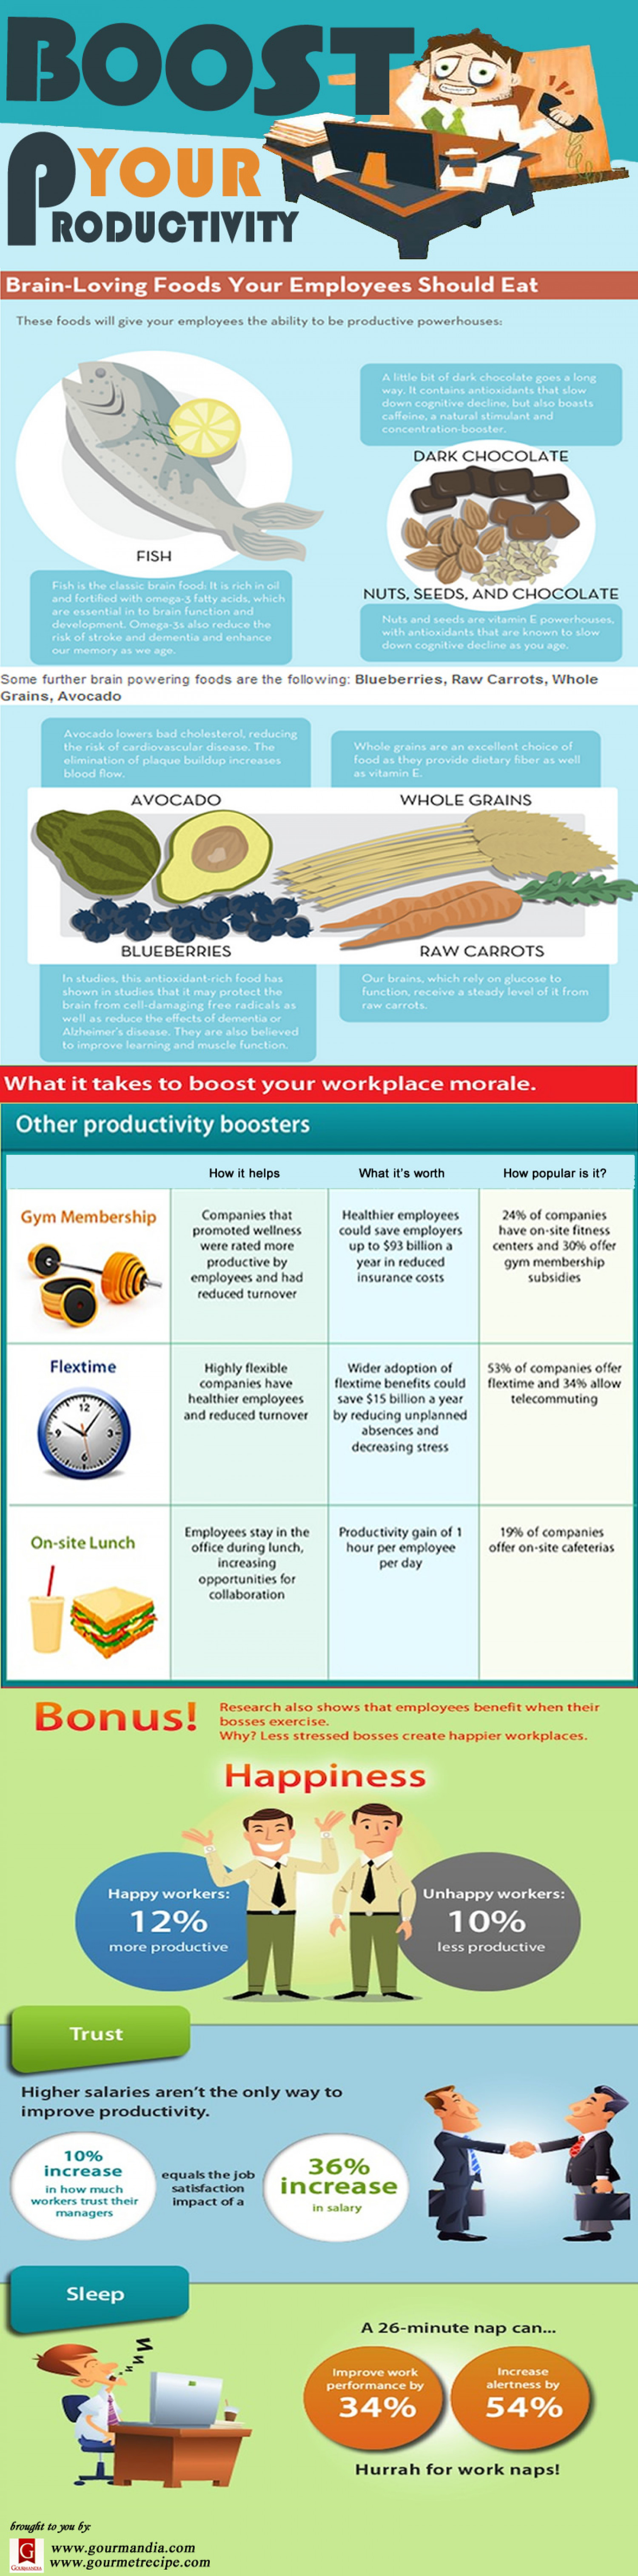 Boost your Productivity Infographic